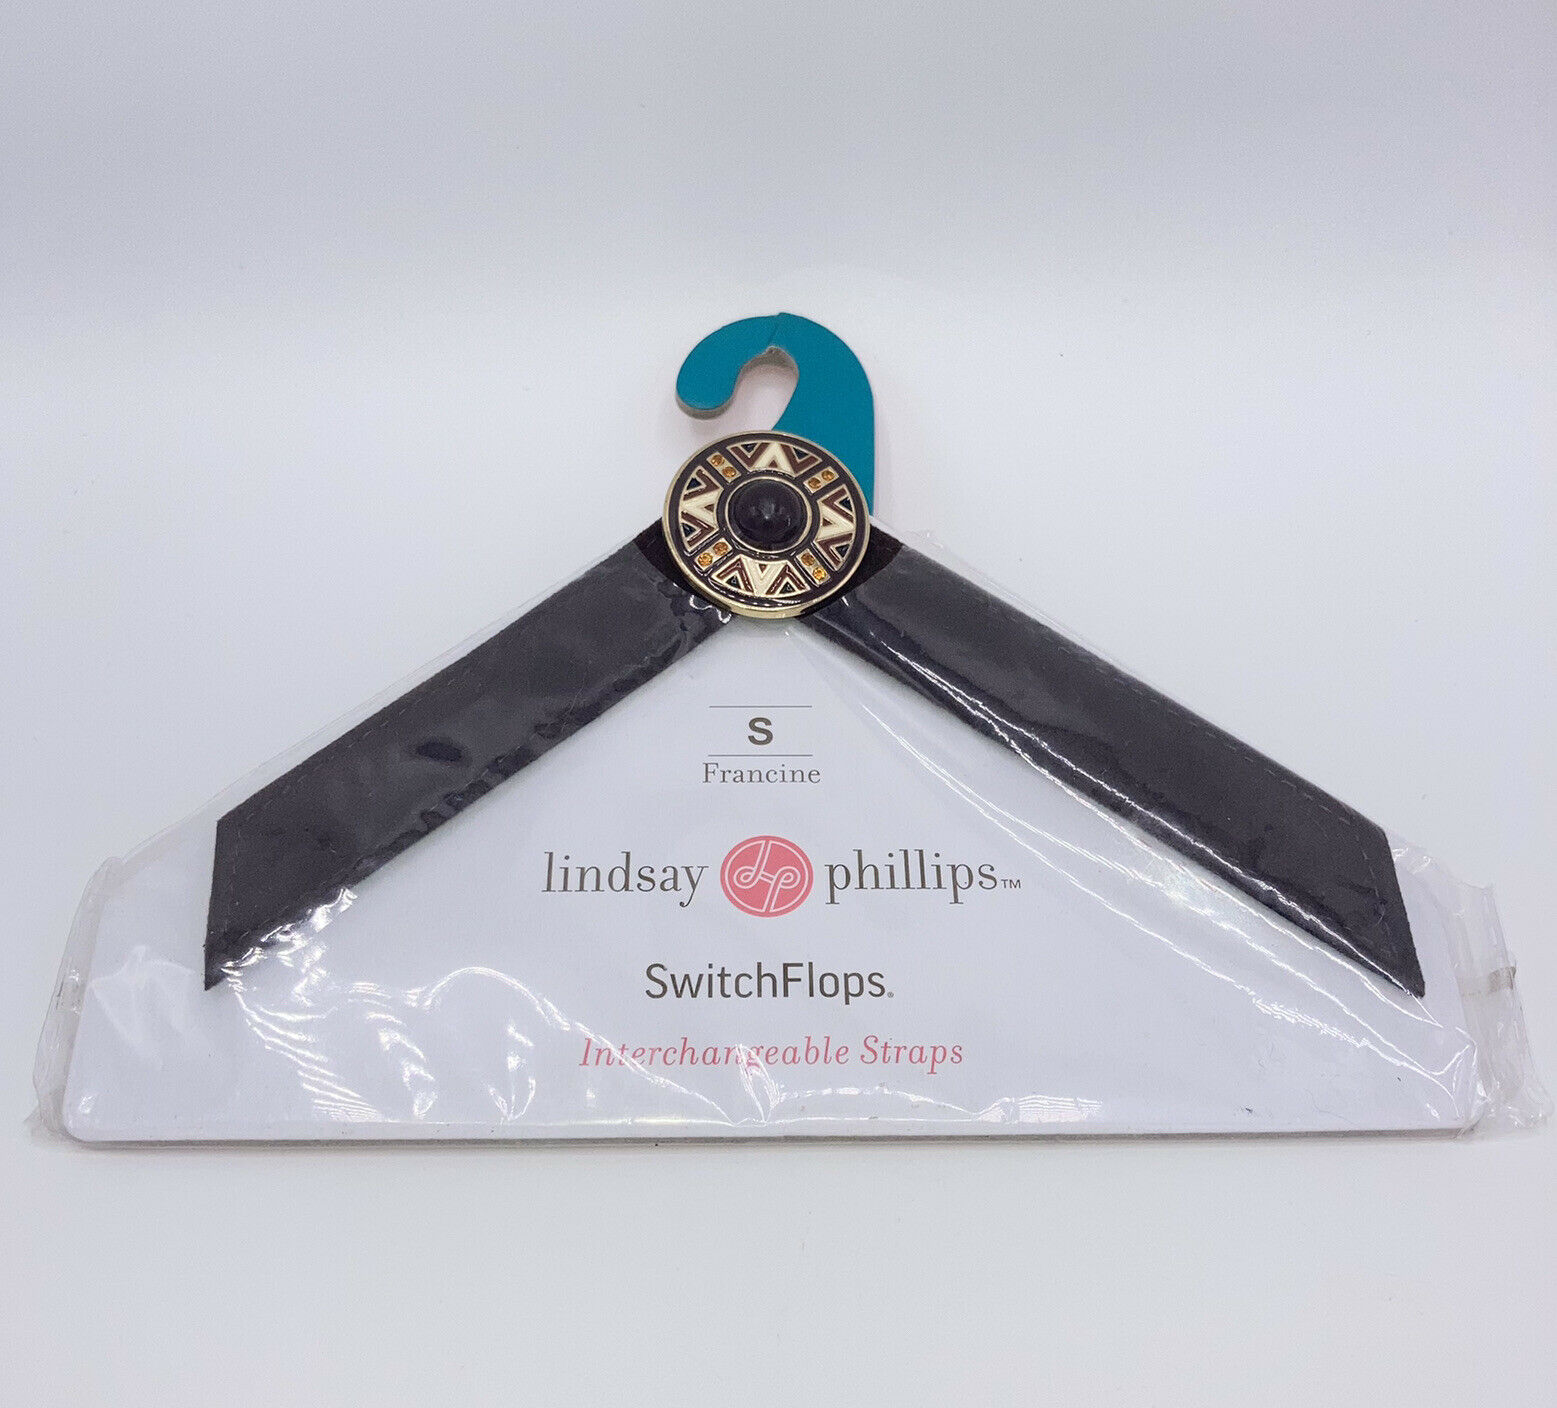 Lindsay Phillips SwitchFlops Interchangeable Brown Straps Size Small Francine